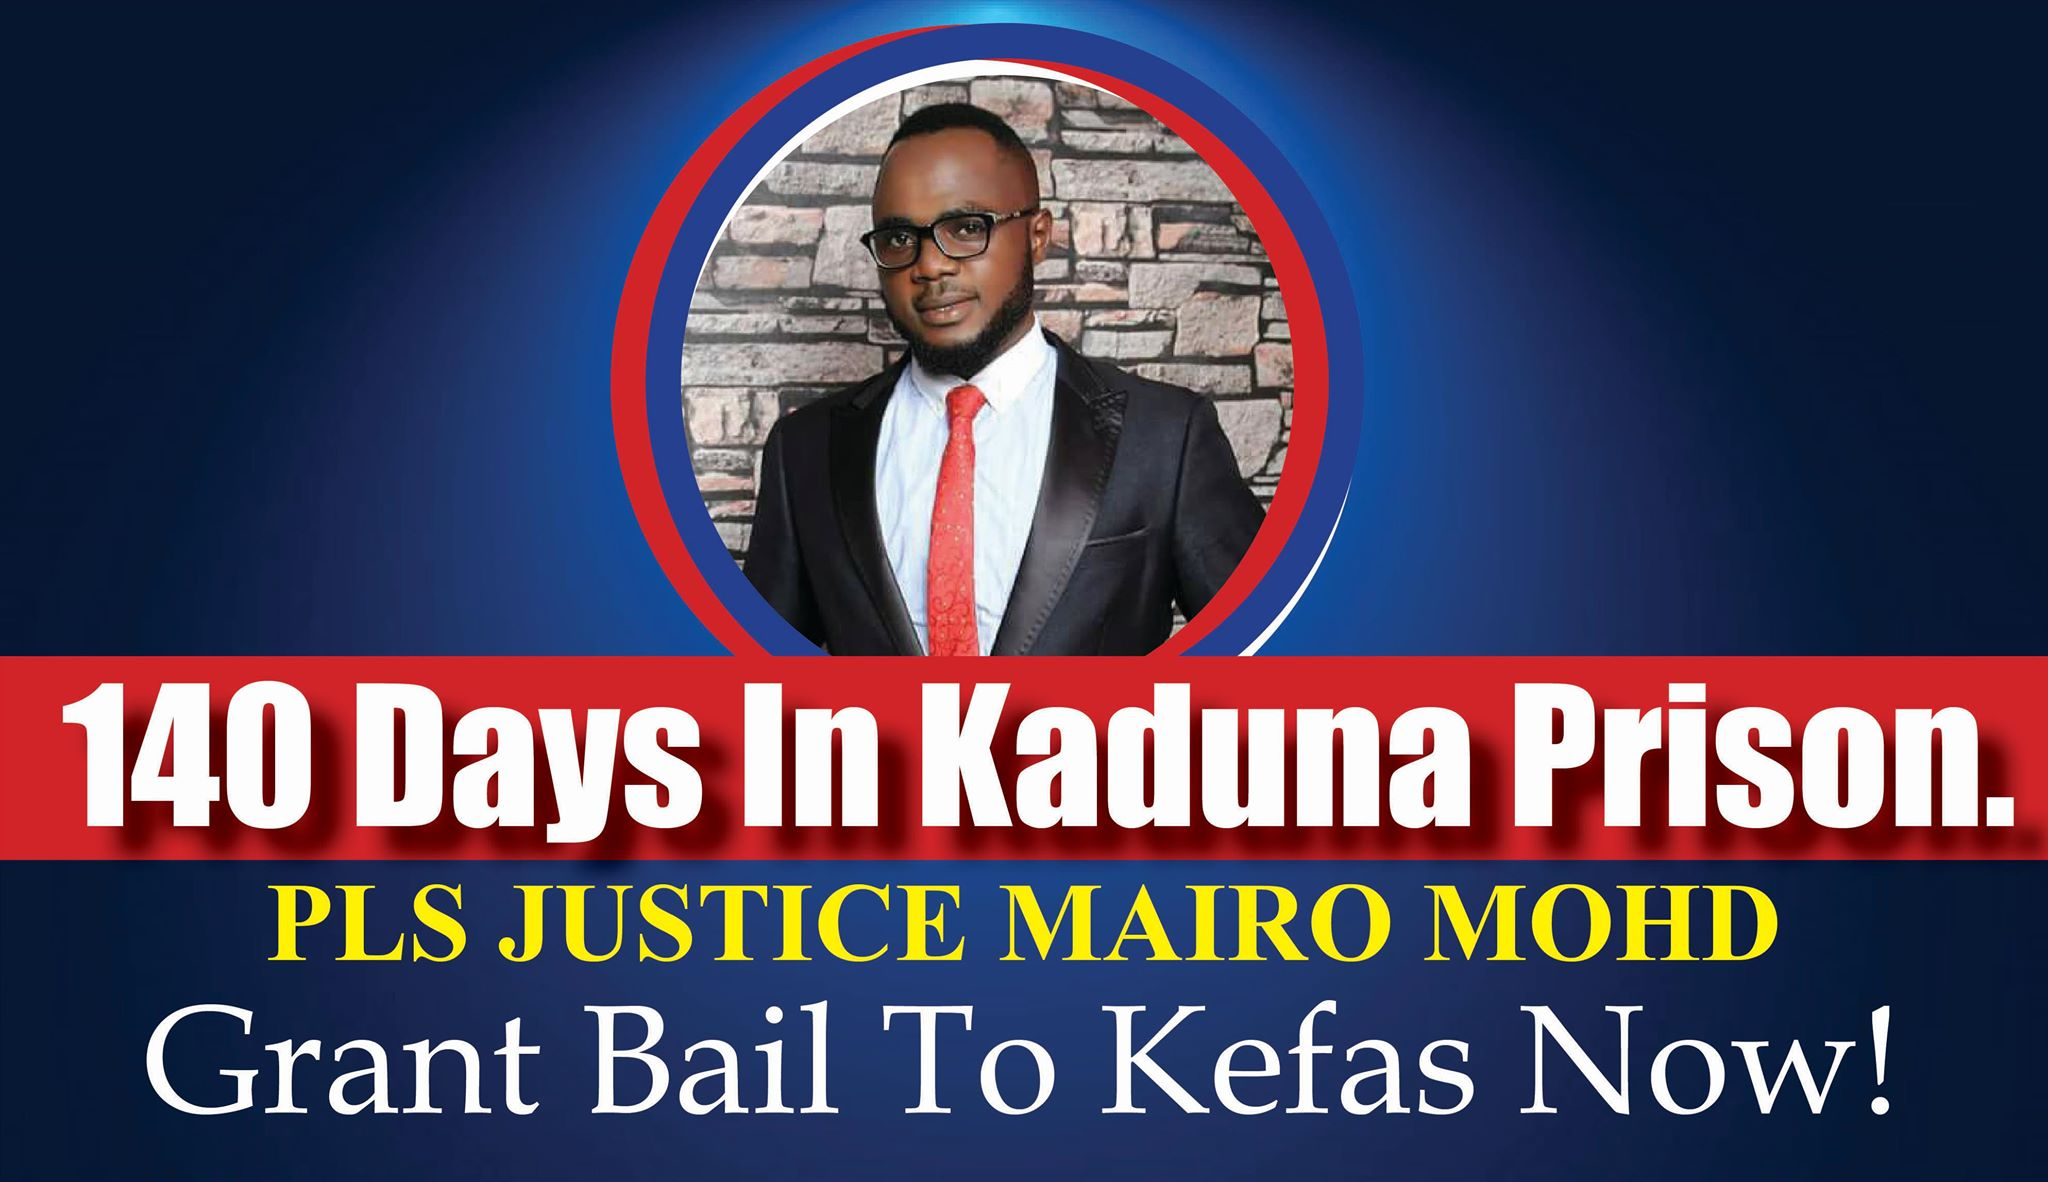 KEFAS: Open Letter To Justice Mairo Mohammed